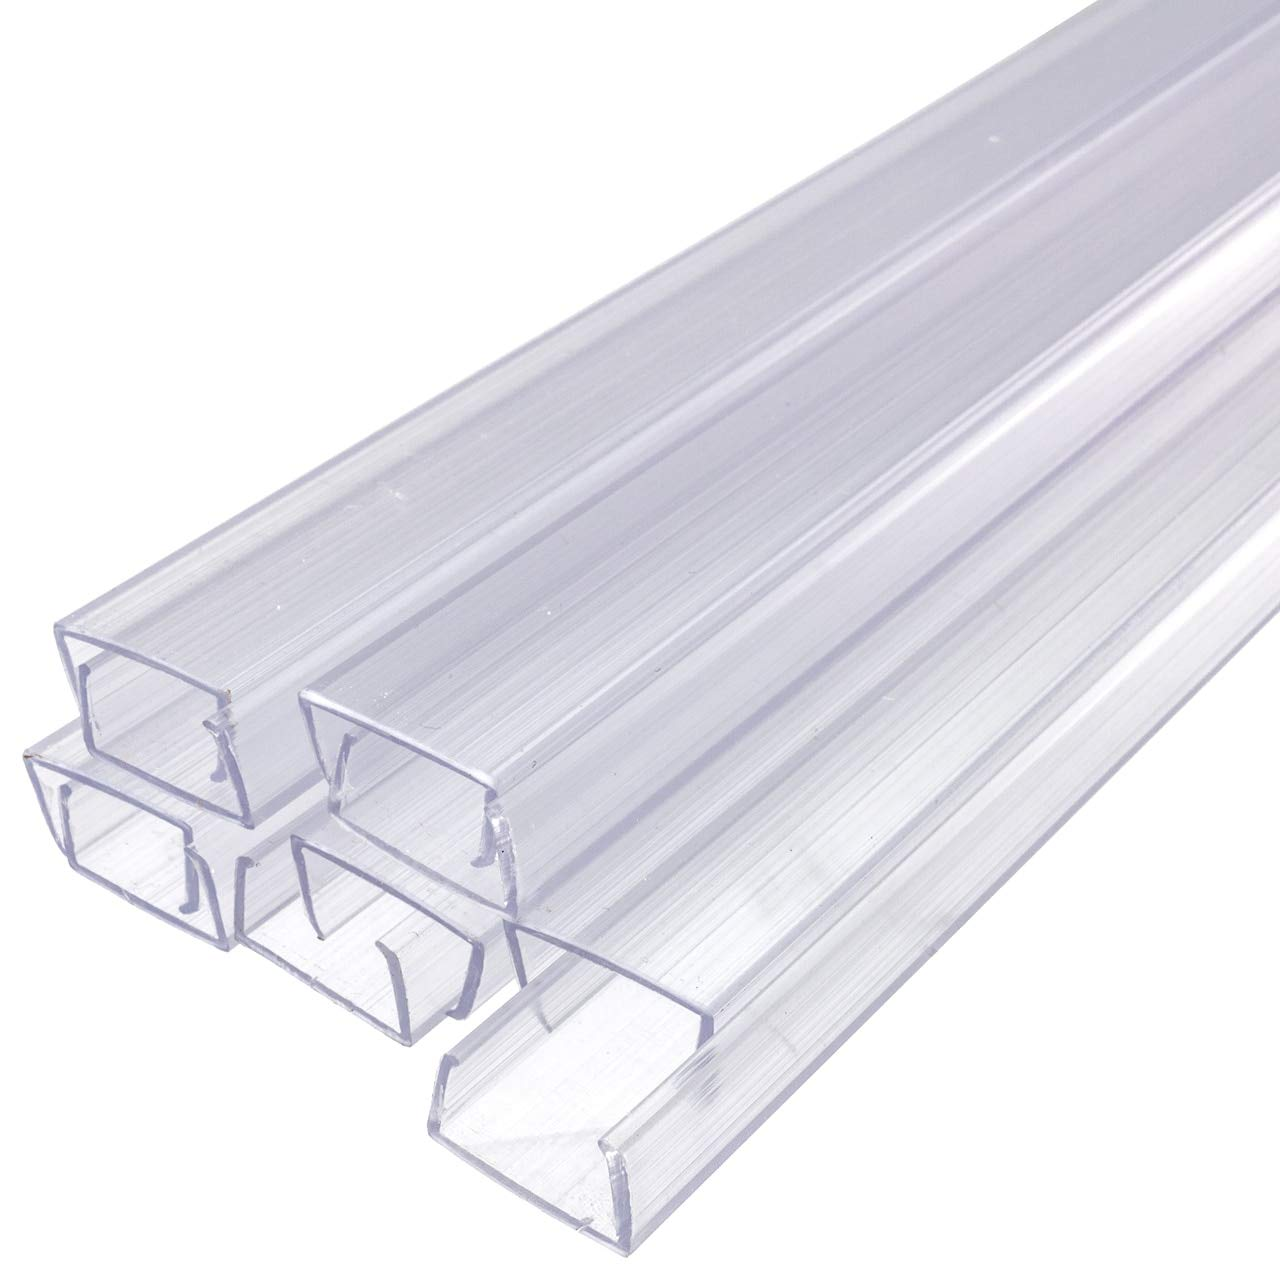 Brilliant Brand Lighting 24 Inch x 3/8 Inch Rope Light Mounting Track - Clear PVC Channel (10 Pack) - 12/120 Volt